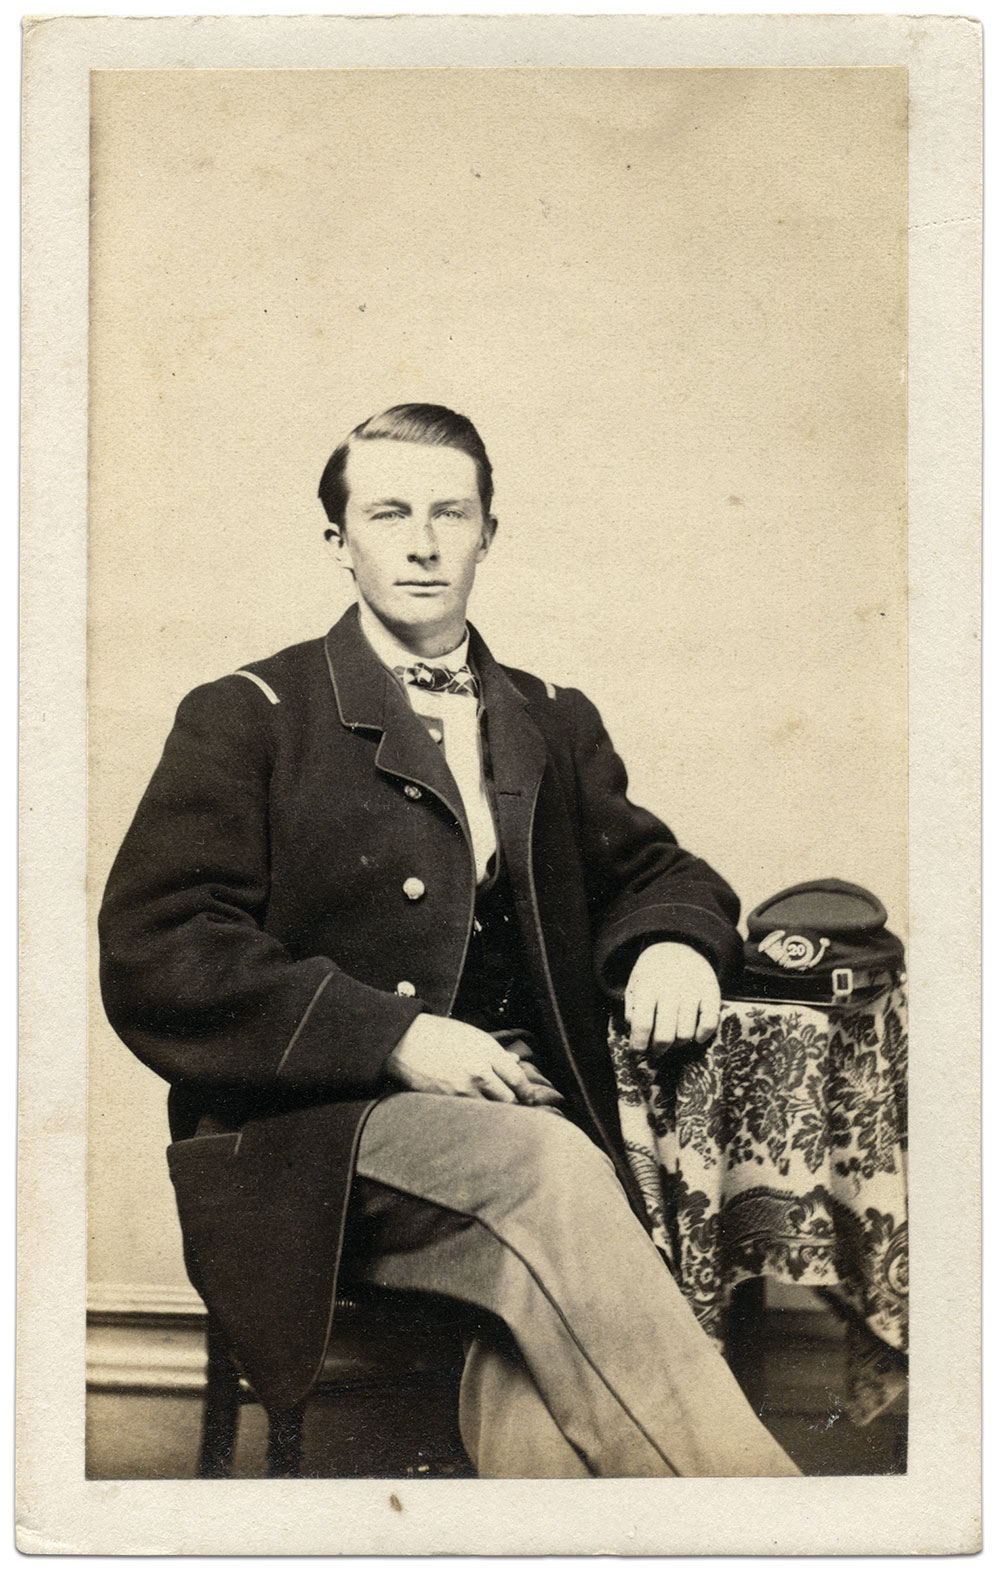 Carte de visite by R.H. Dewey of Pittsfield, Mass. Rick Carlile Collection.